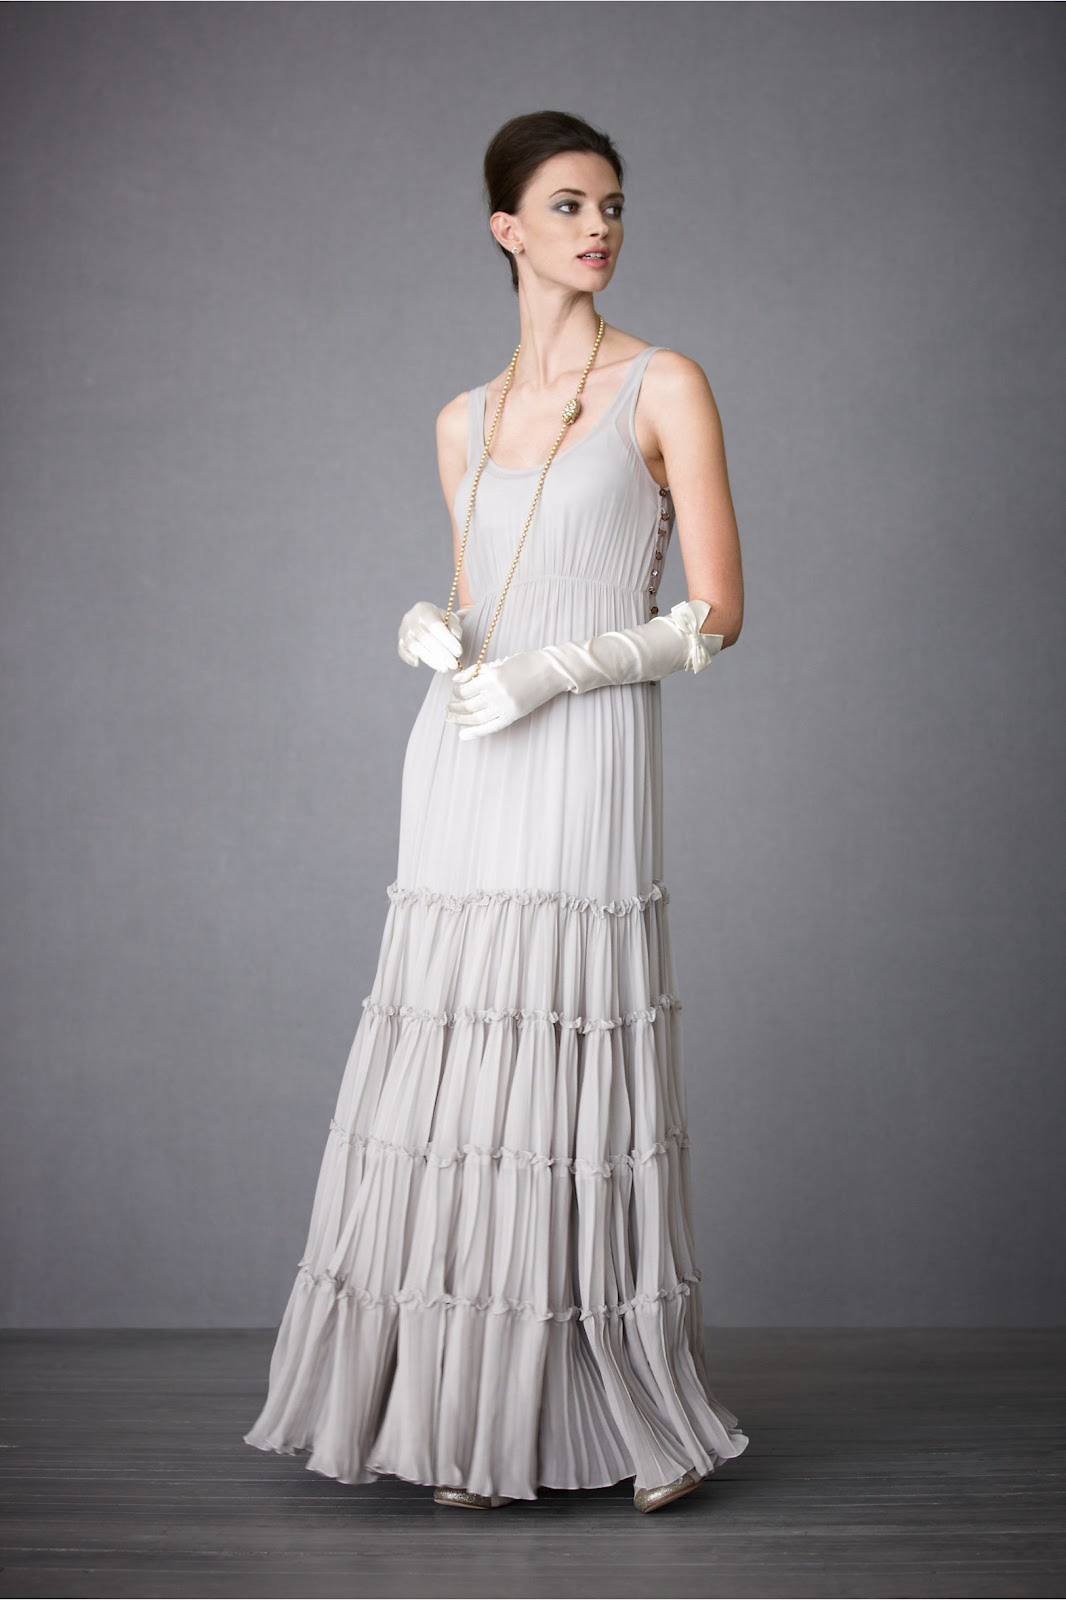 Via for Period style wedding dresses